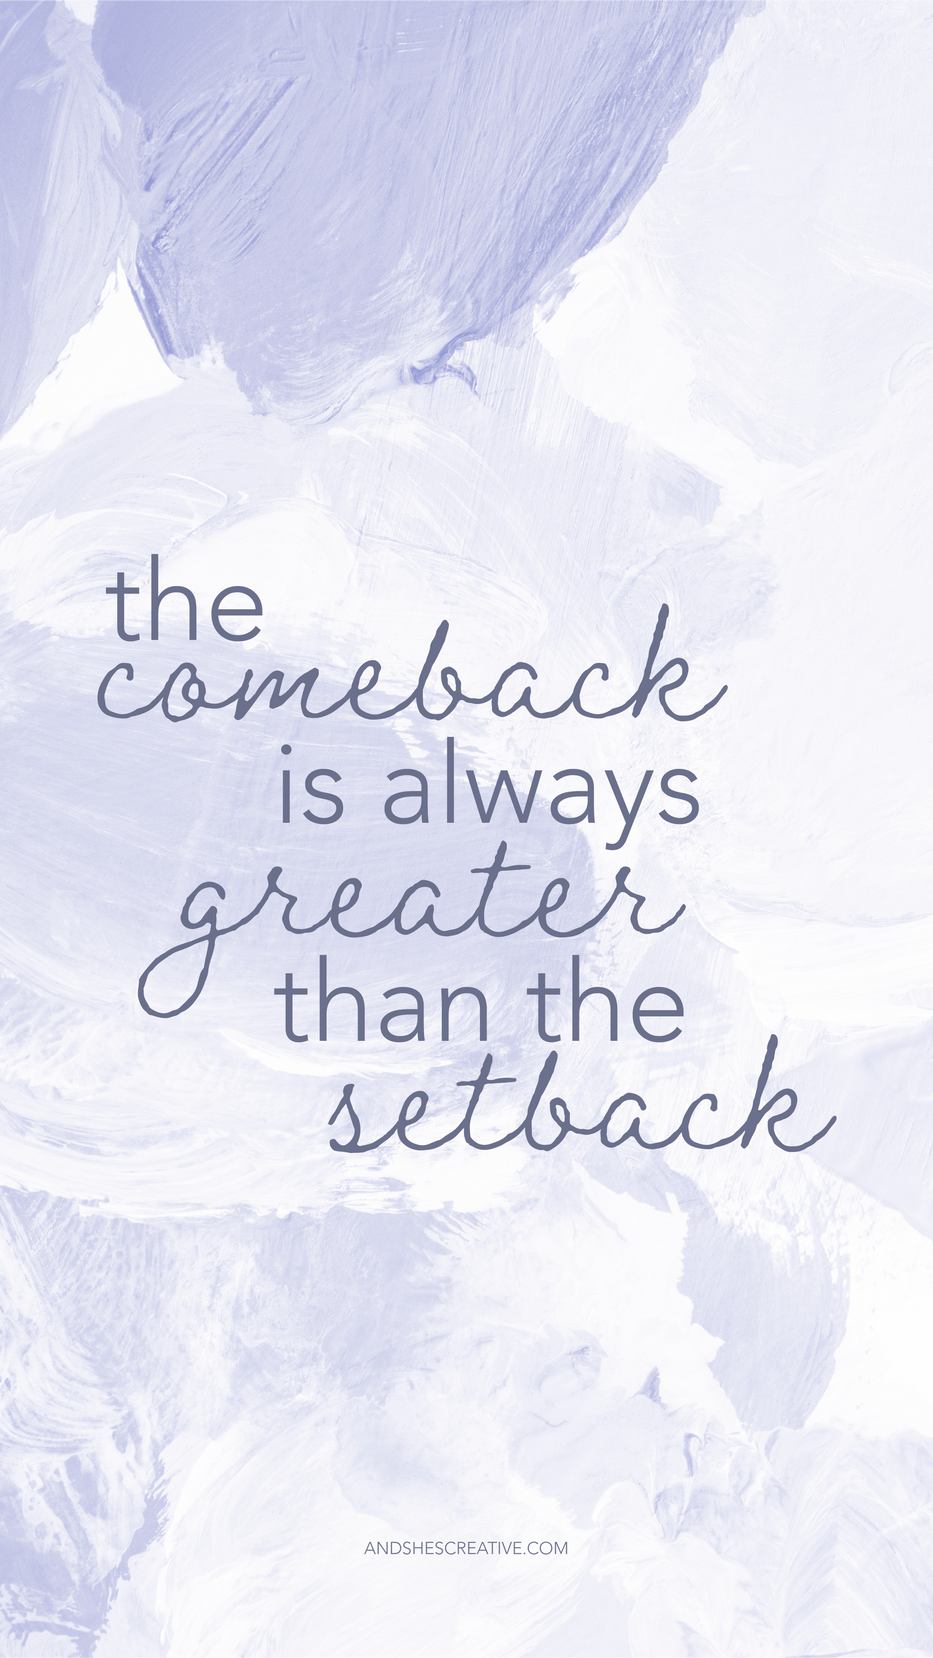 The Comback Is Always Greater Than The Setback Mobile